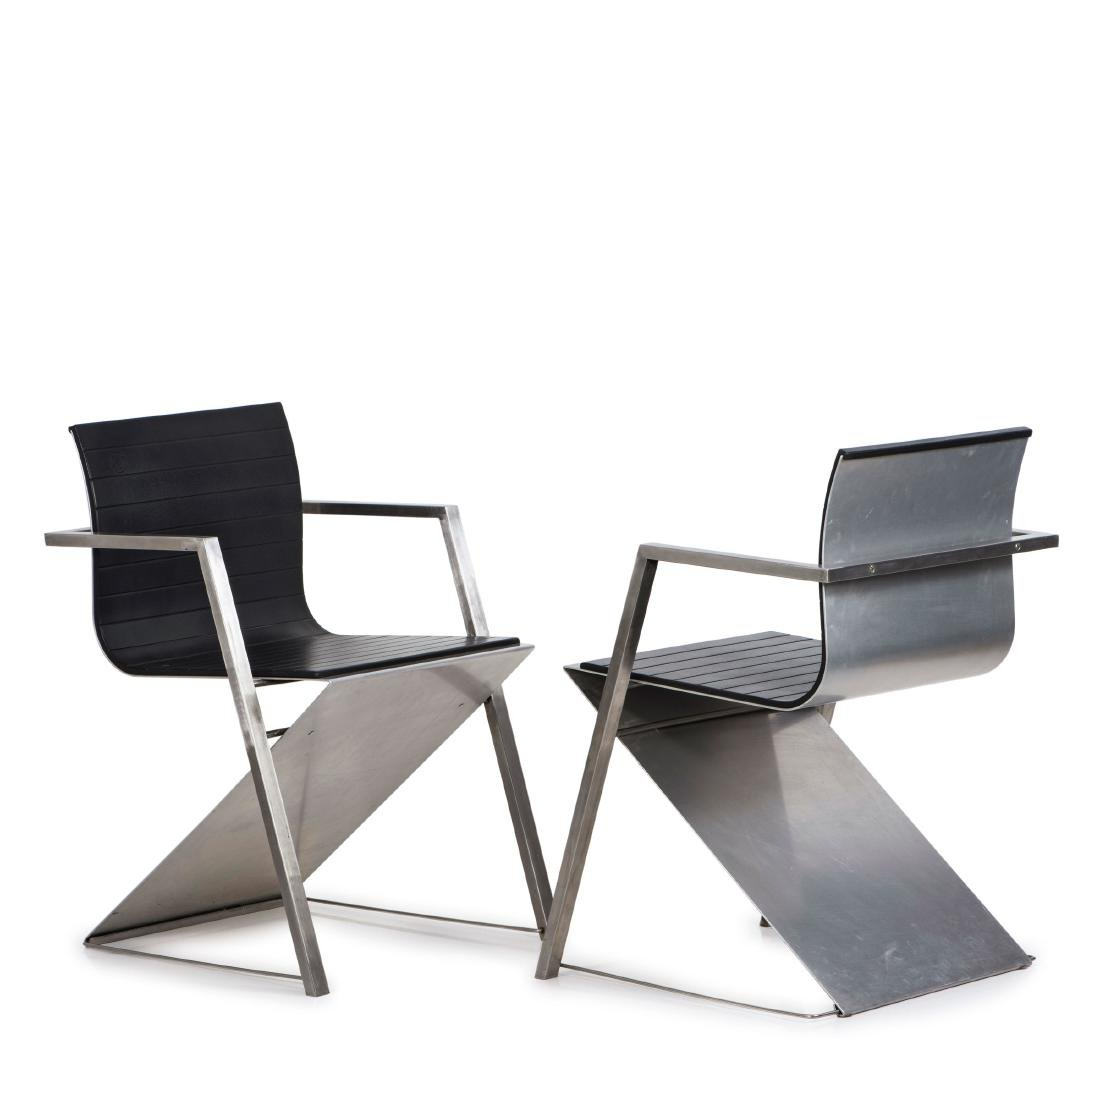 Two 'd8 Documenta' armchairs, 1987